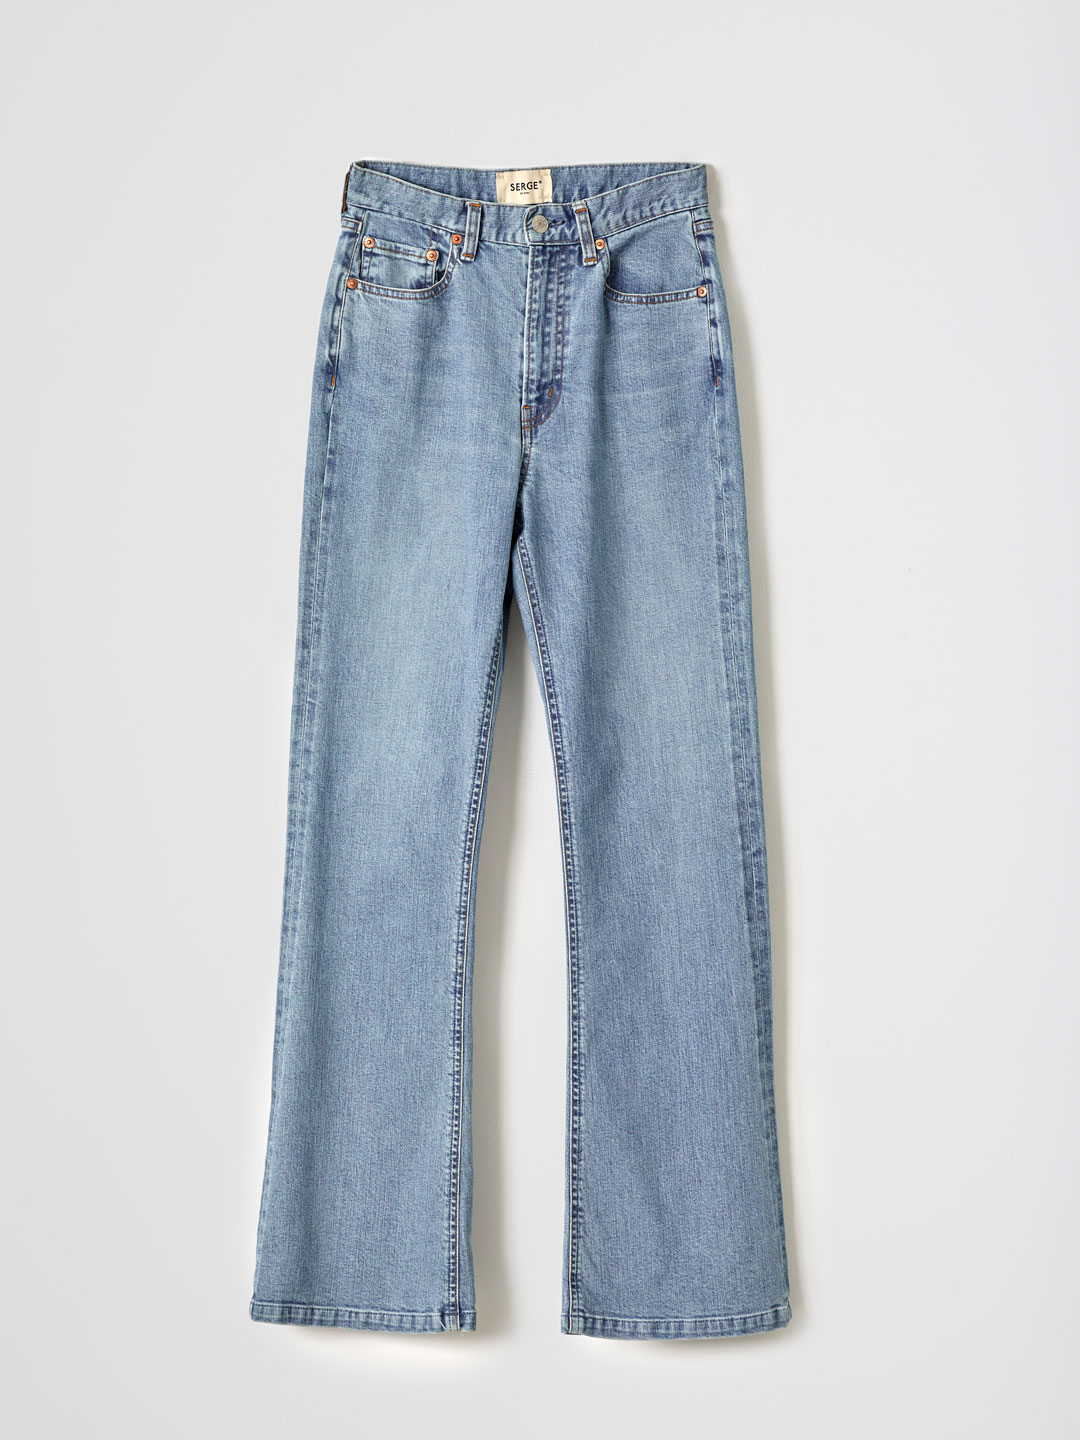 SERGE dodo bleu FLARE PANTS - Light Blue